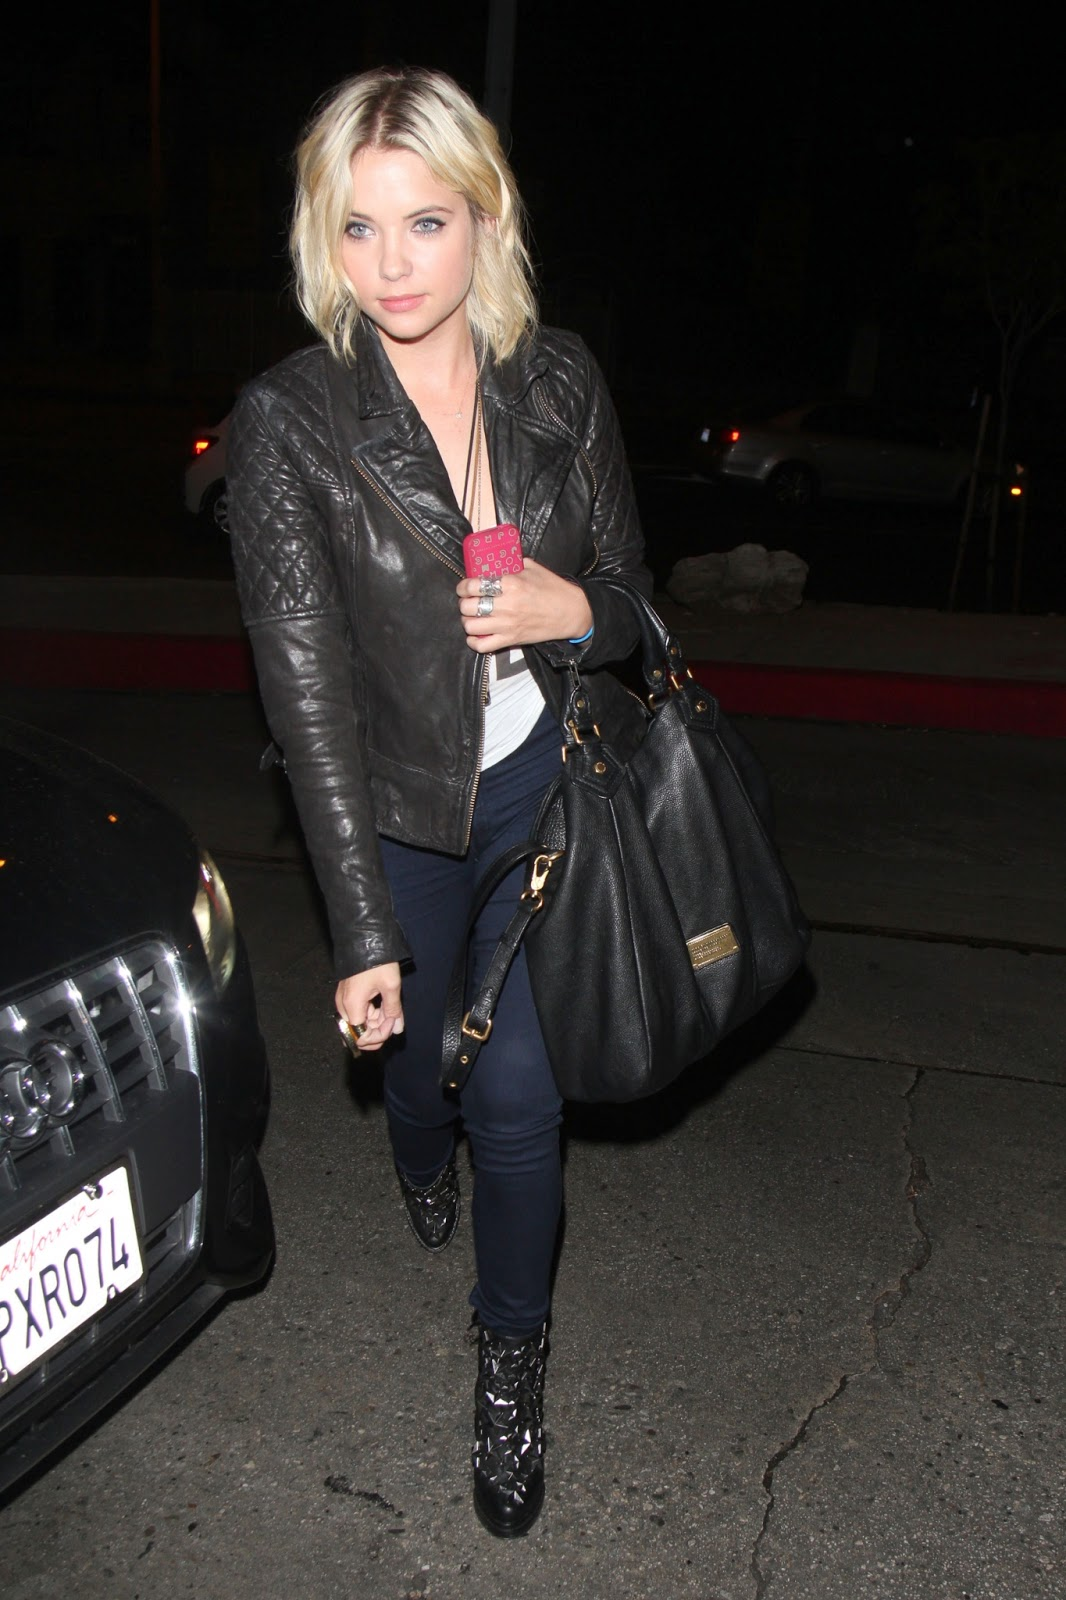 Celebrity Fashion  A La  Ashley Benson's Street Look